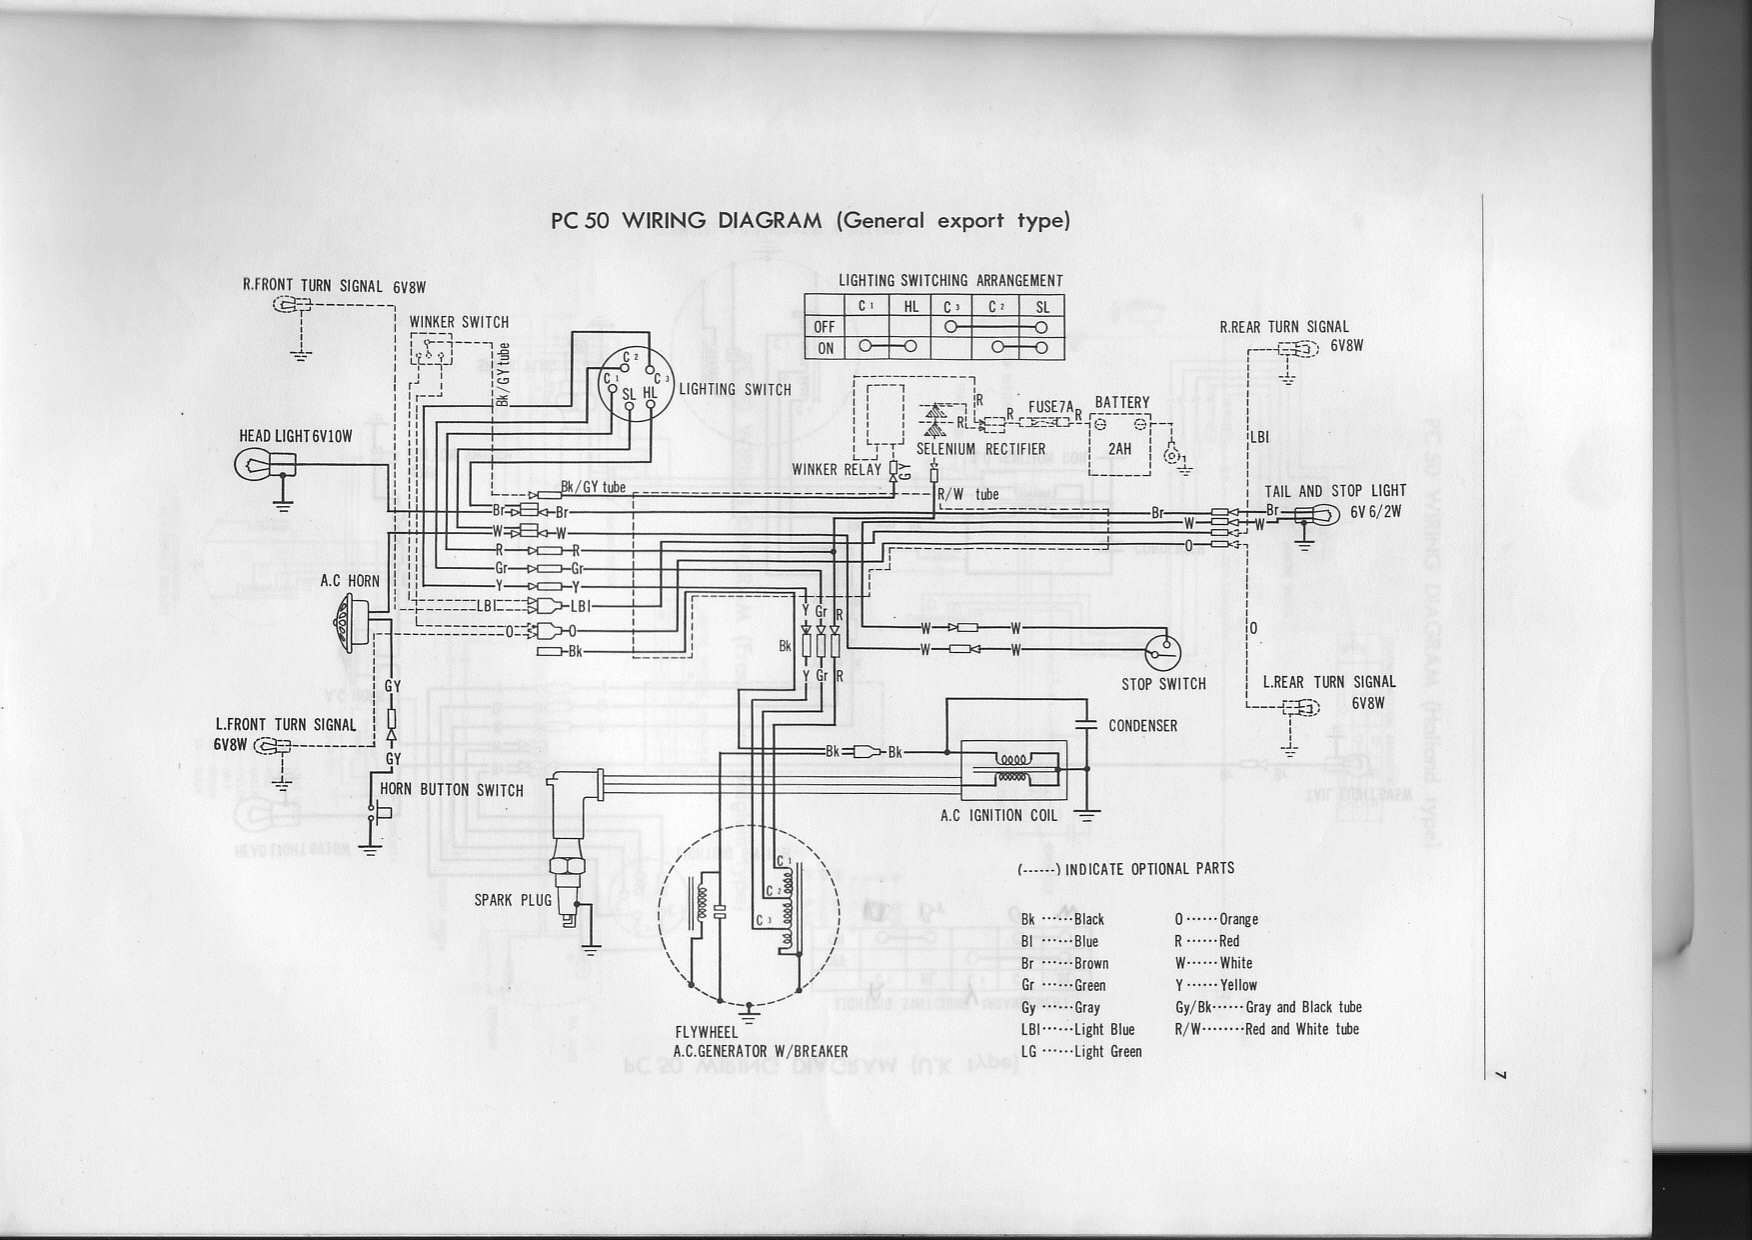 1988 Honda 200 Wiring Diagram Simple A Cdi Ignition For 185s Vtwctr 200e